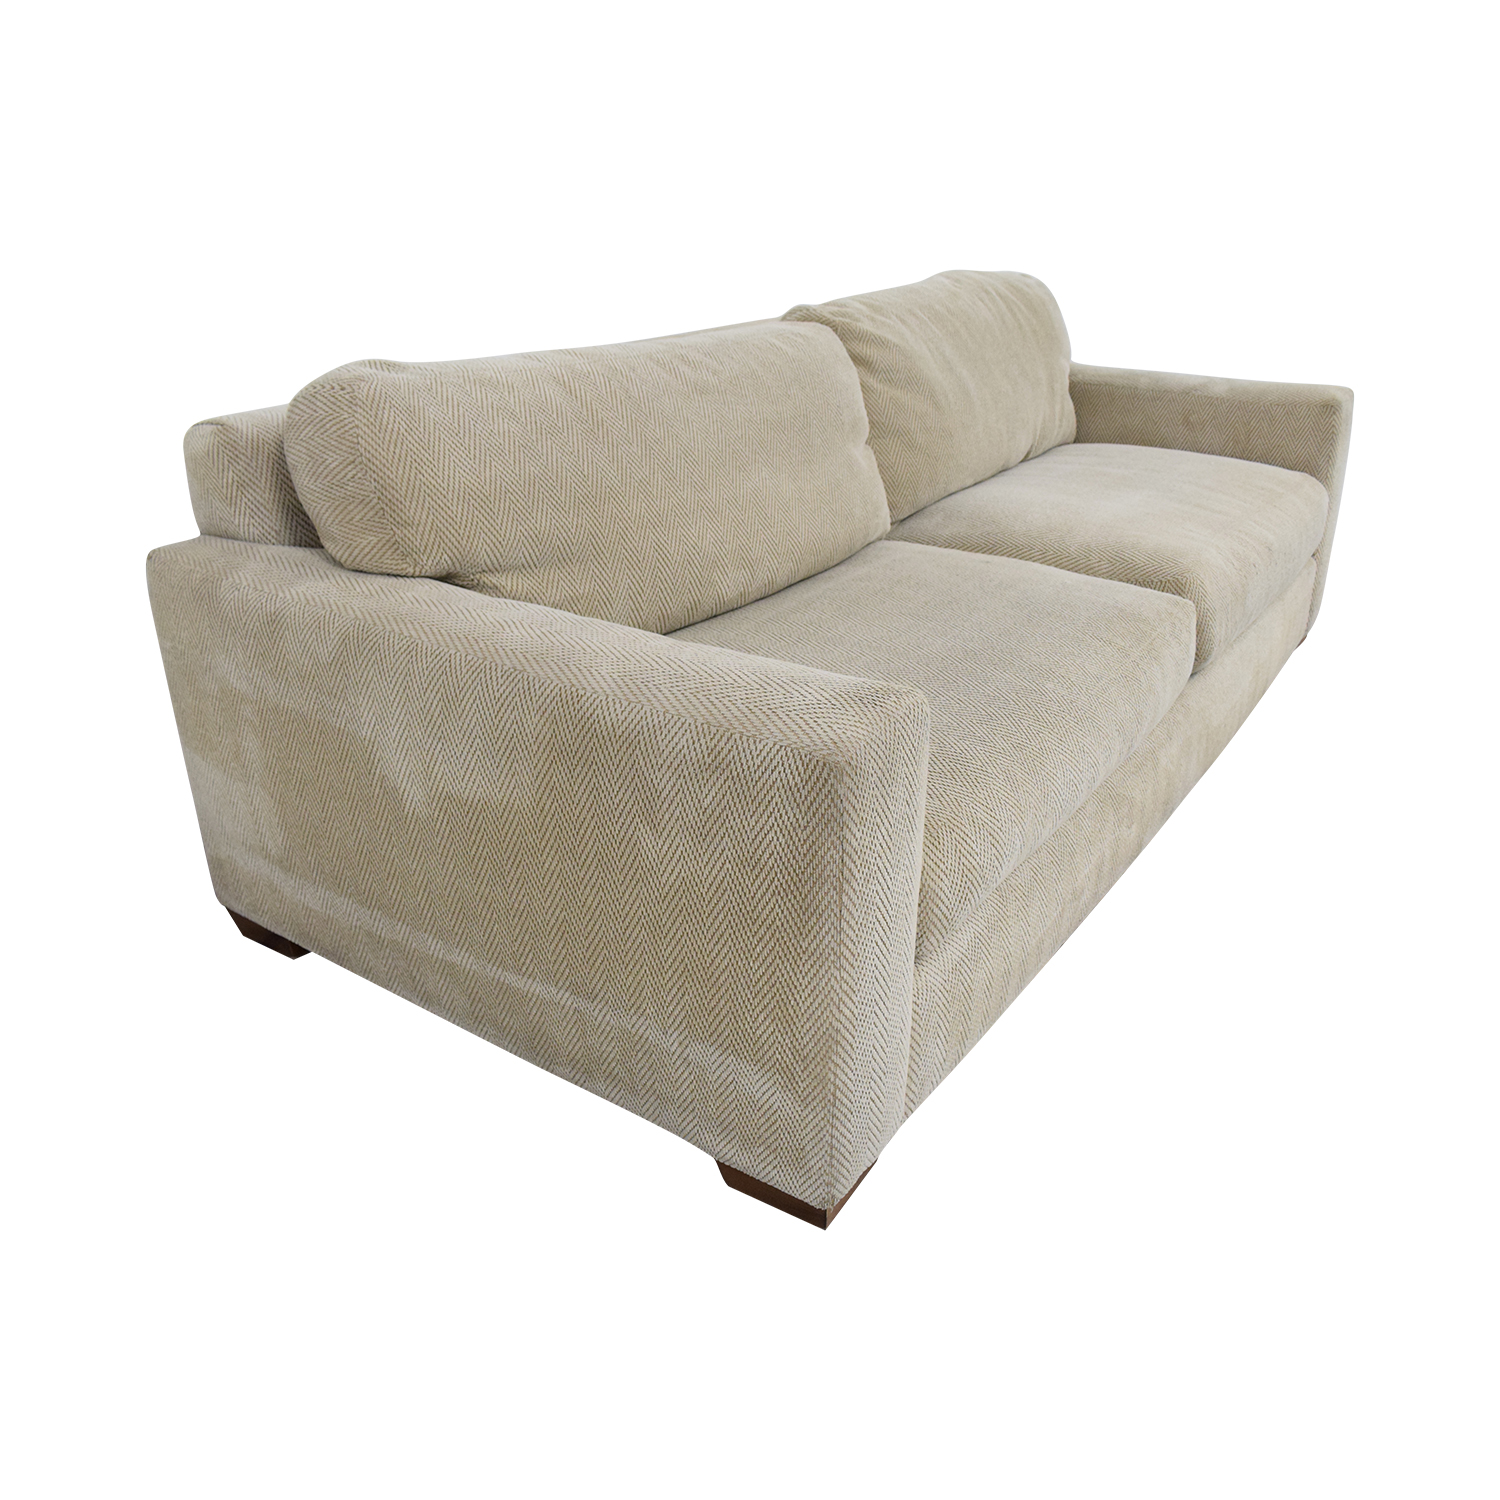 Rowe Furniture Rowe Furniture Dakota Two Cushion Sofa discount